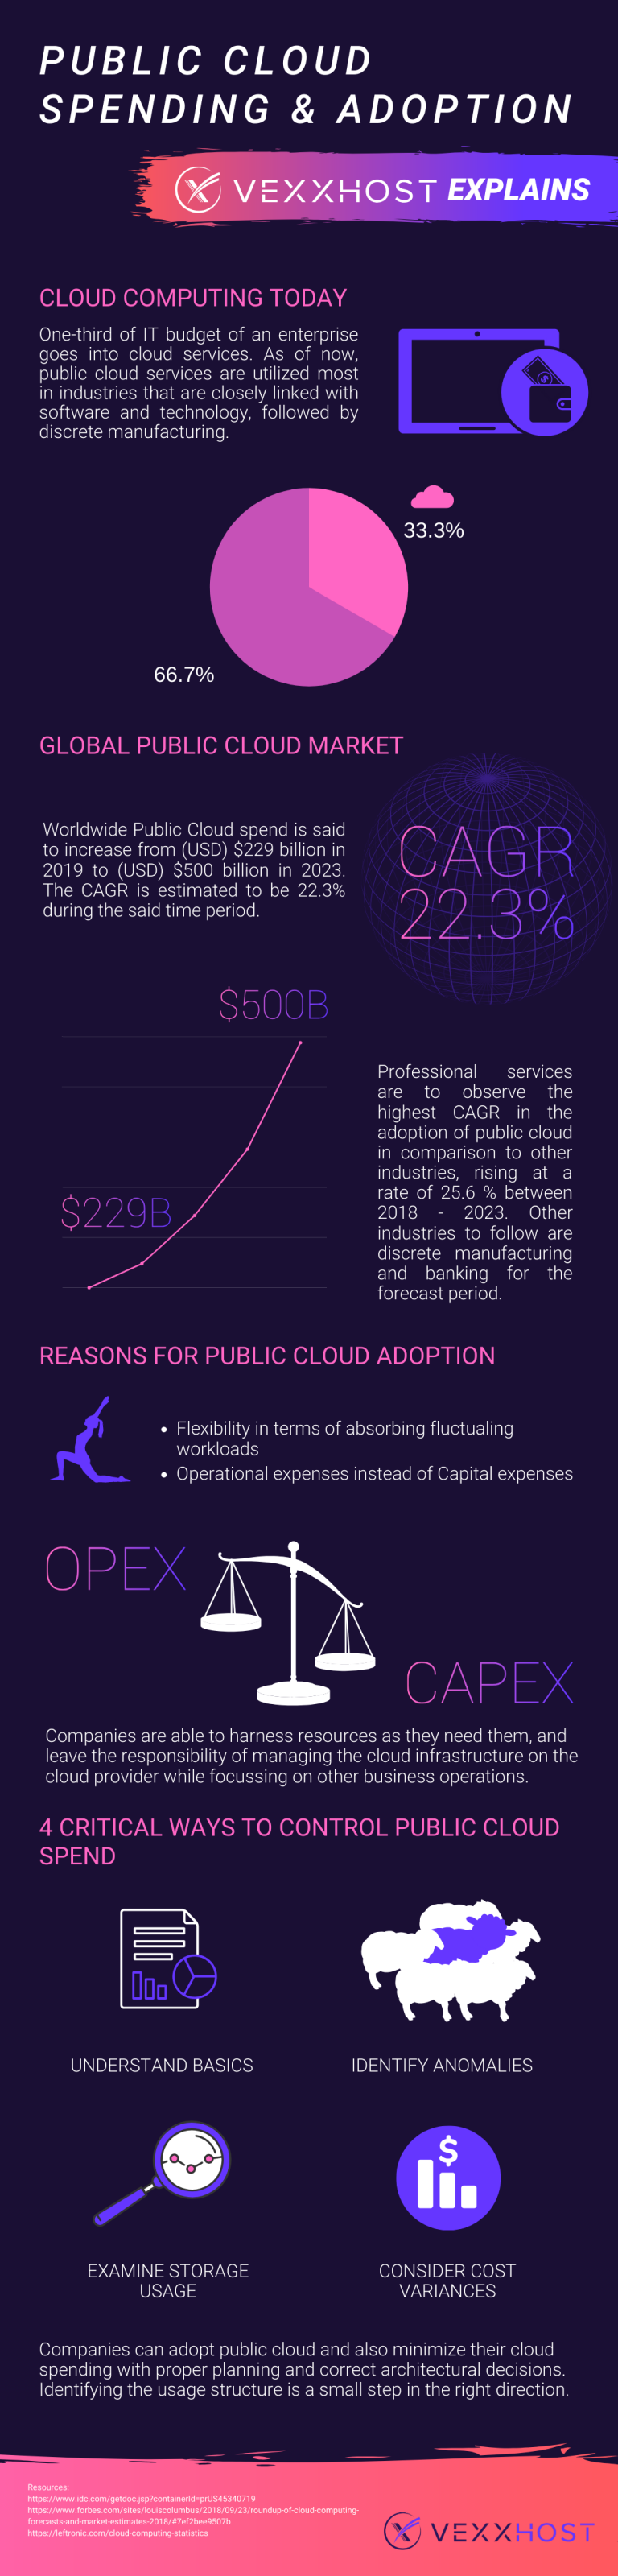 Public-Cloud-Spending-and-Adoption-infographic-plaza